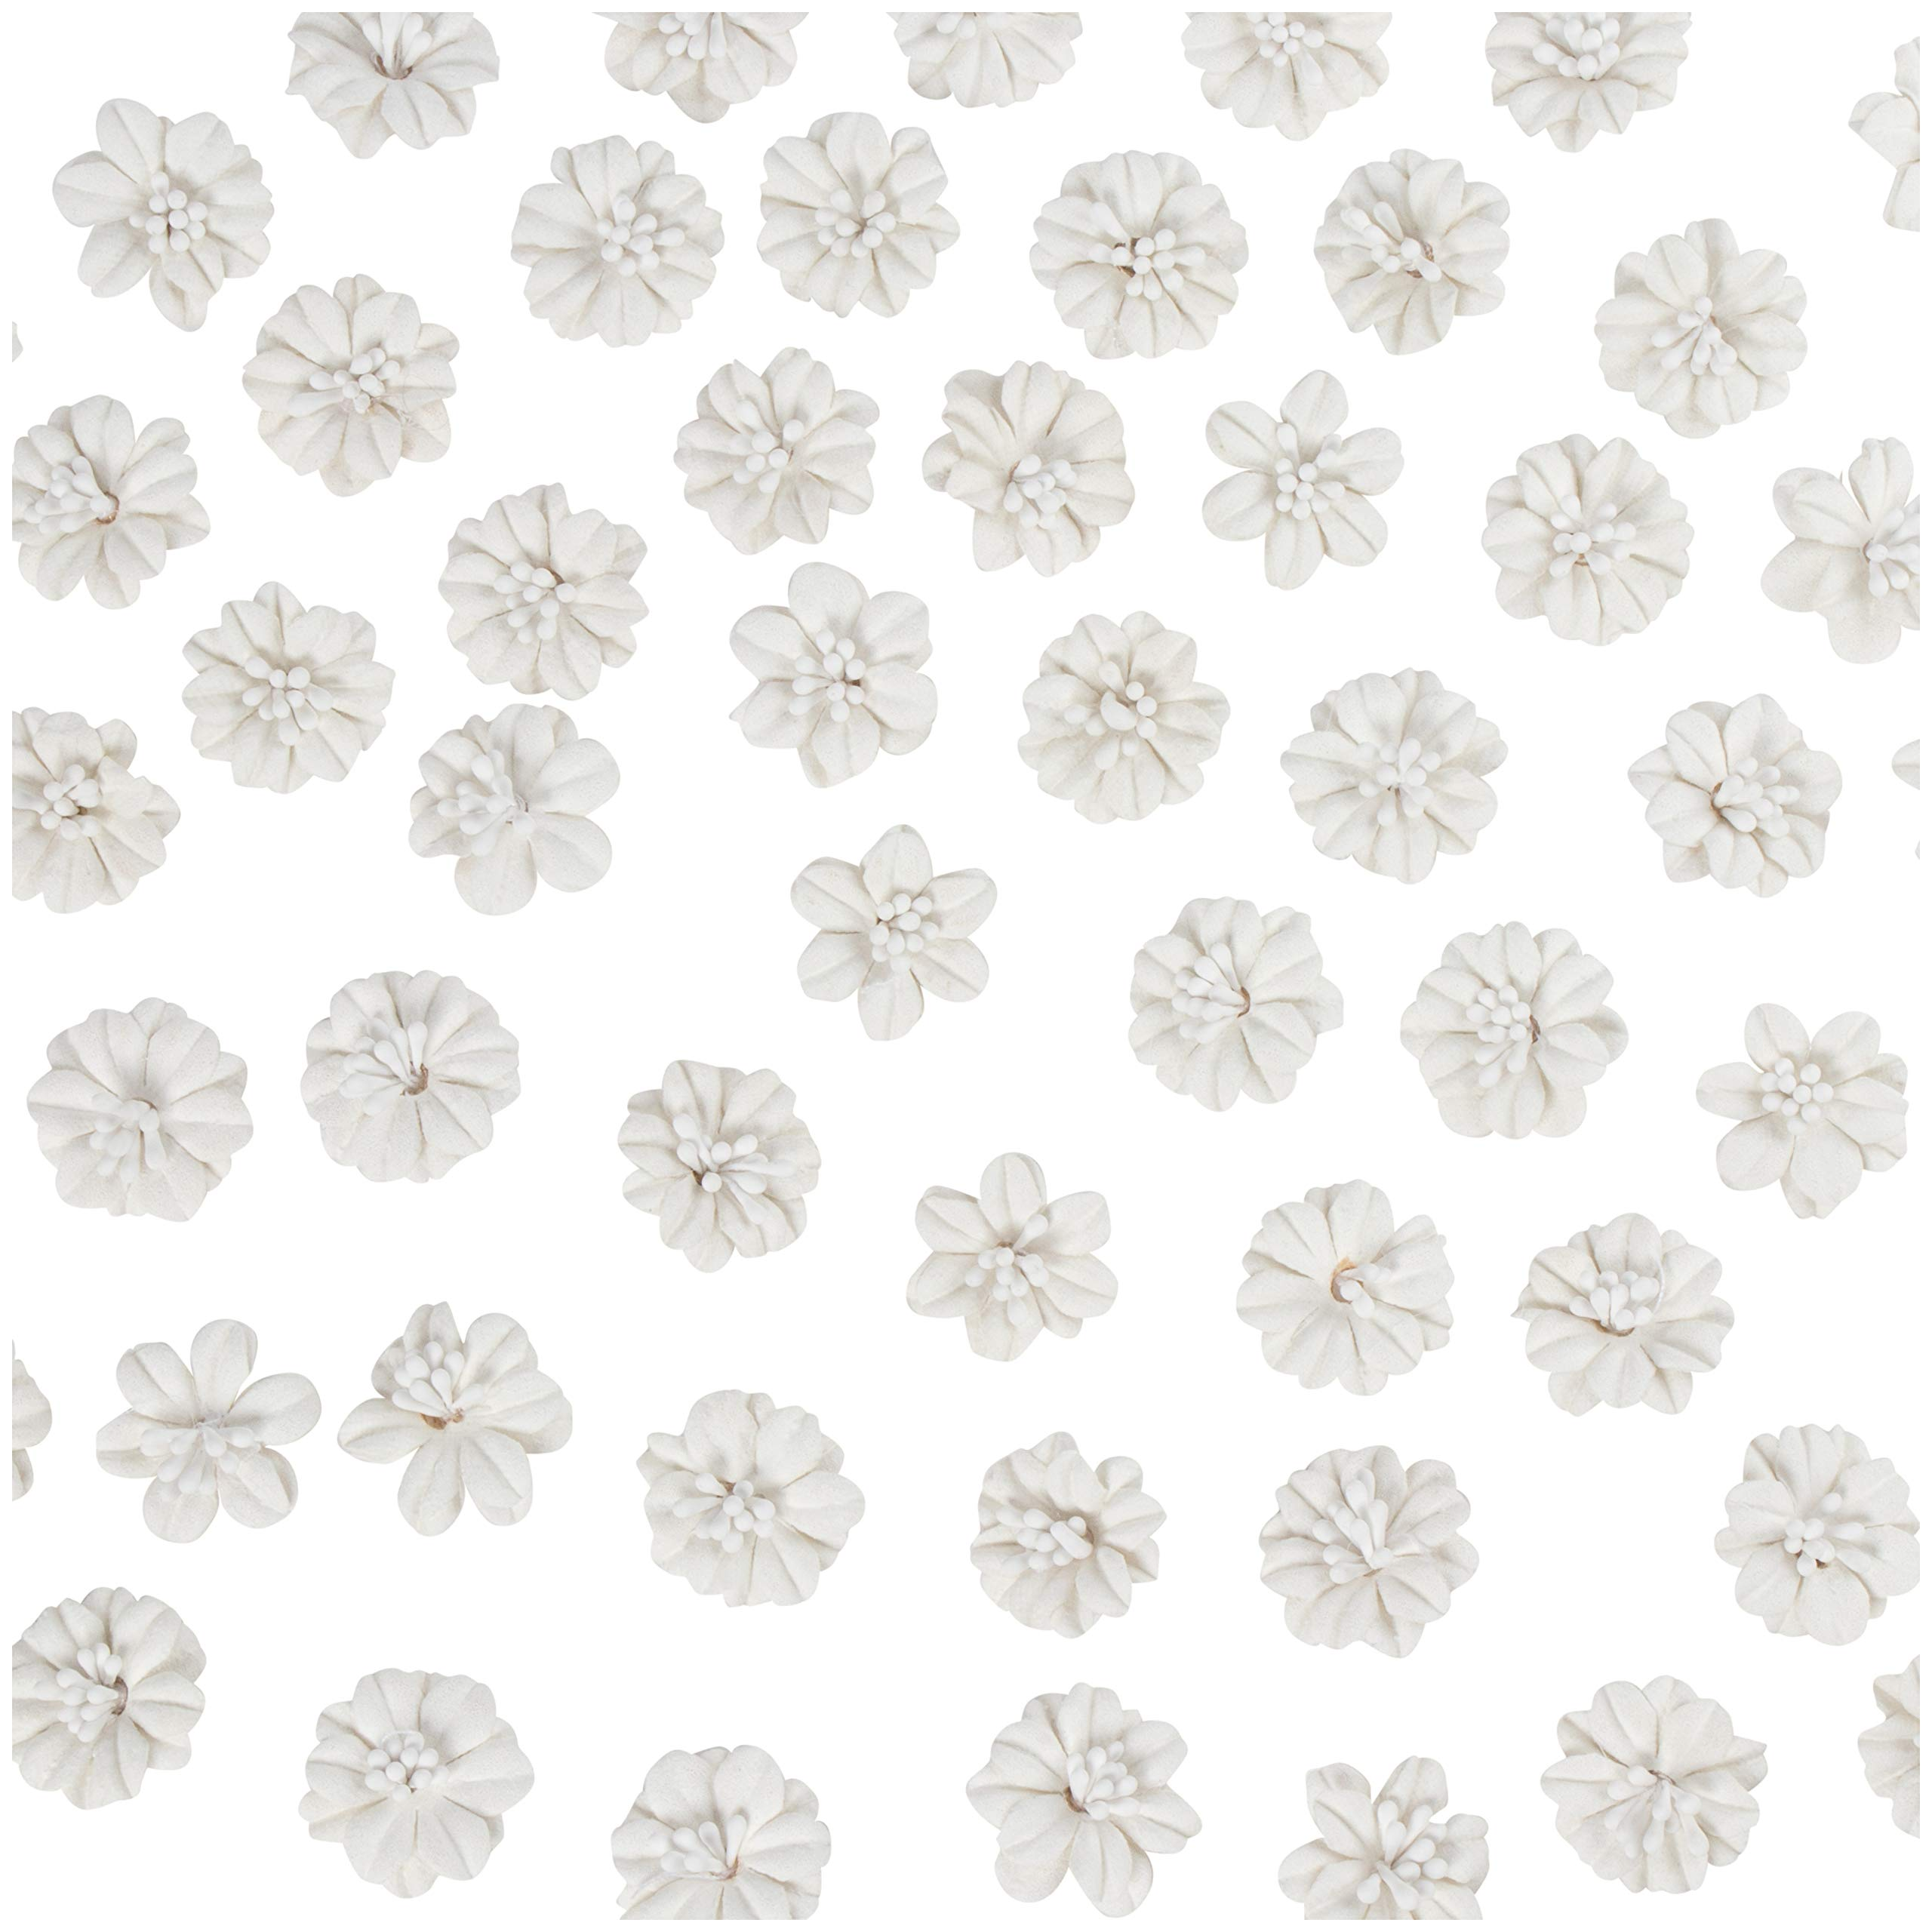 Decorative Craft Flowers - 100-Pack Flower Embellishment, Applique, Table Scatter, Artificial Flower Head for Scrapbooking, DIY, Wedding Party Decoration, White, Double Layer, 1 x 1 x 0.4 Inches